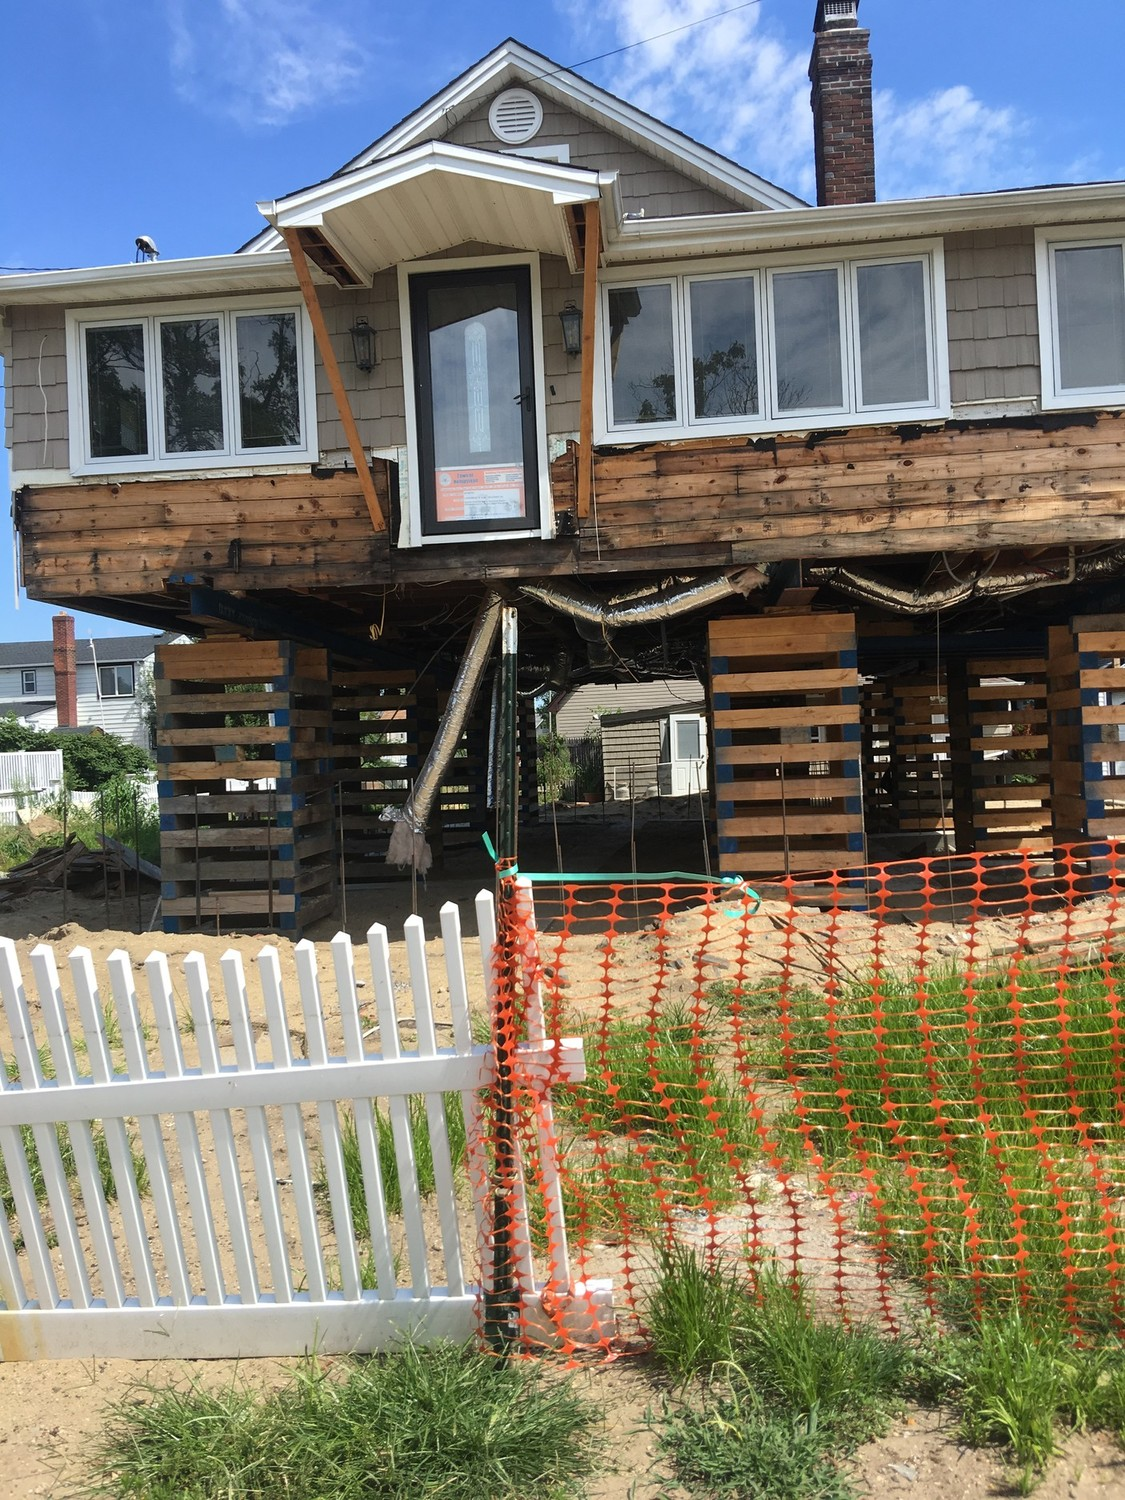 Donna Prisciandaro said that her Bay Park home was suspended in the air on stilts for 11 months after two contractors — one of whom was Lee Moser — took money from her to raise it and did not finish the job.